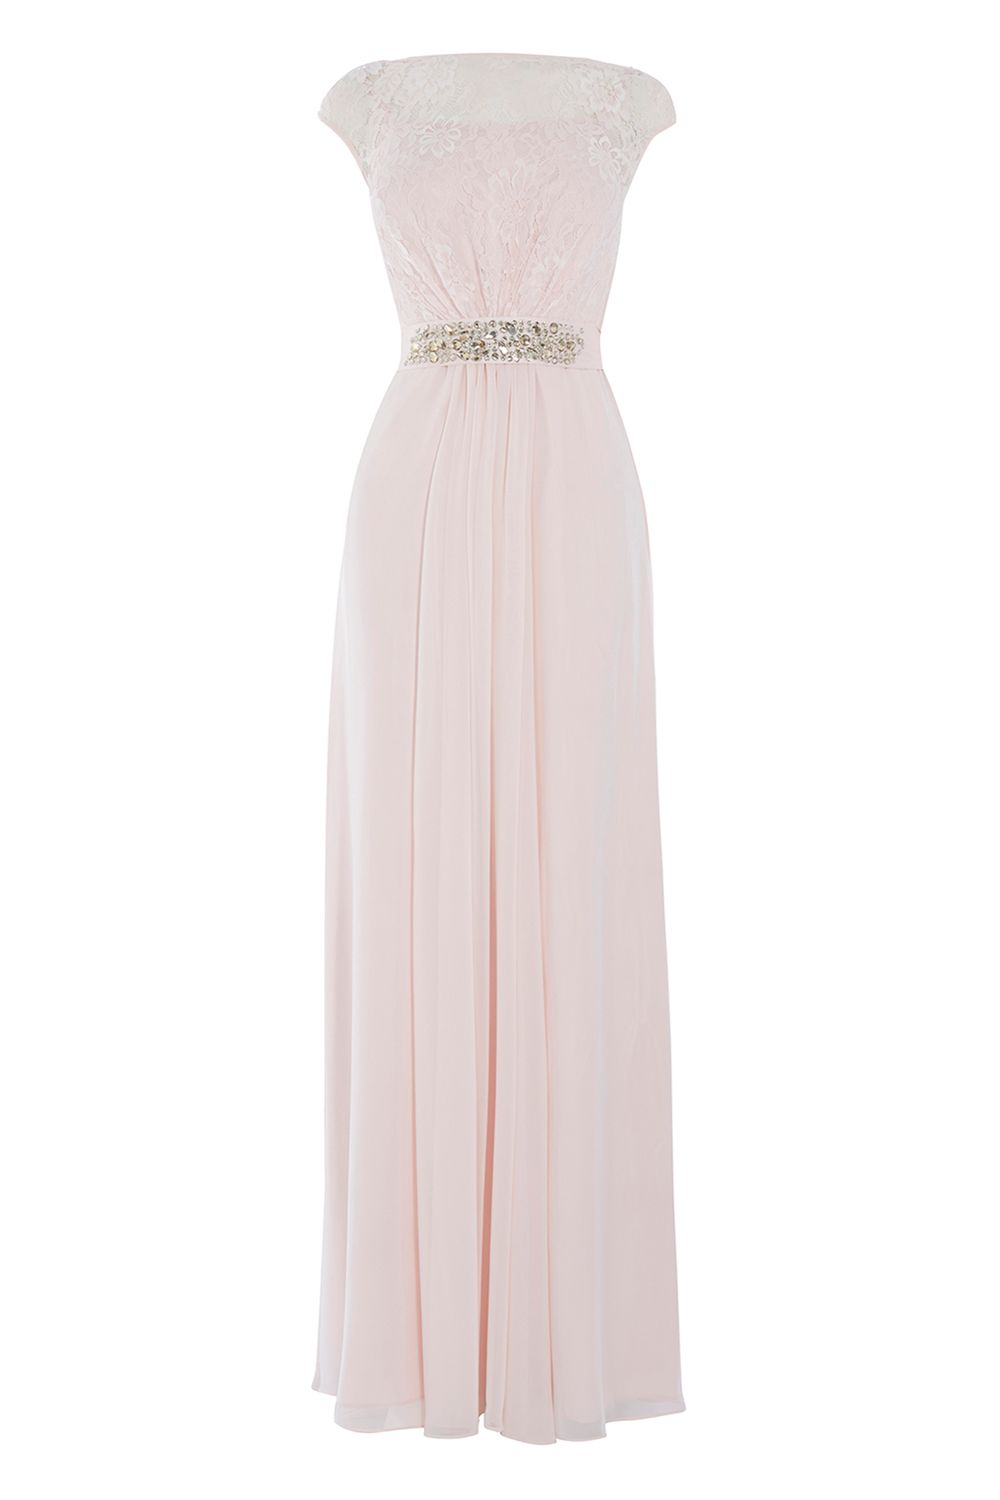 Coast Lori Lee Lace Maxi Dress, Pink